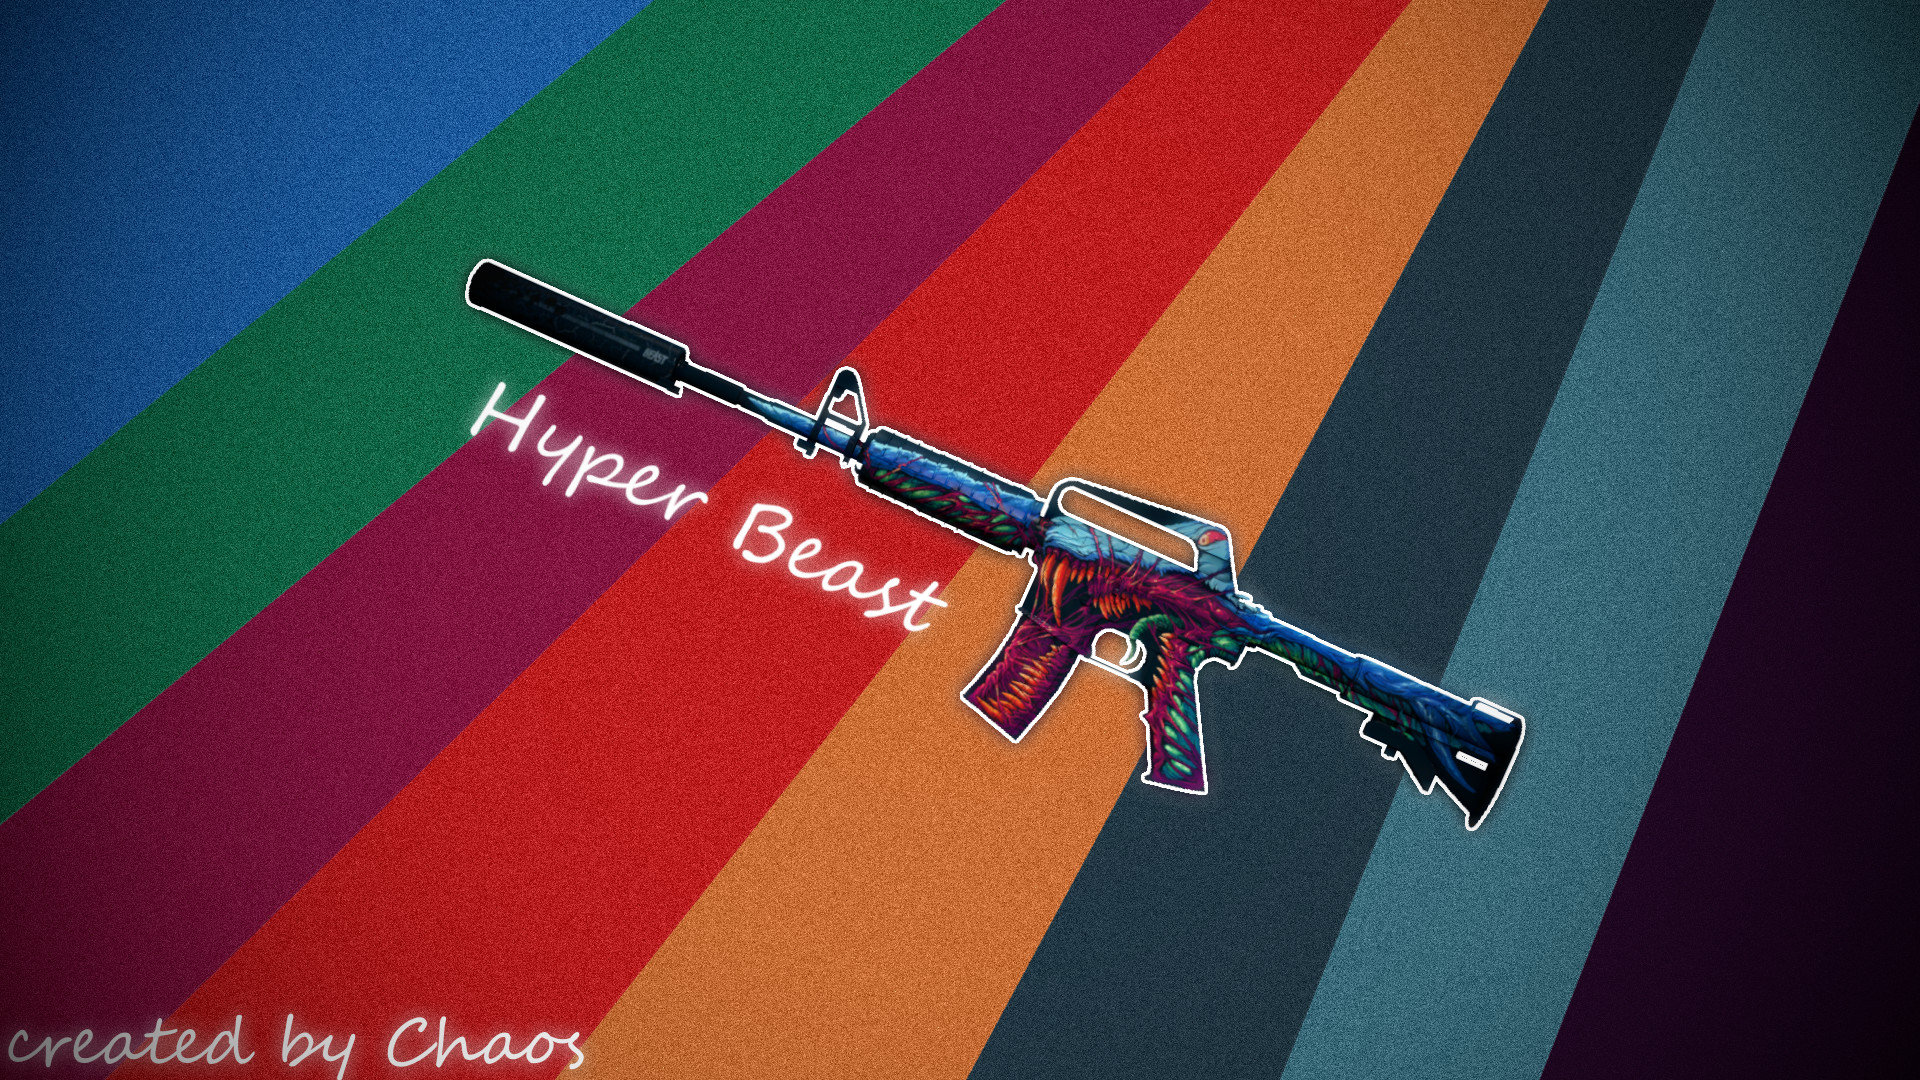 Res: 1920x1080, Is there a 1080p Hyper Beast wallpaper anywhere GlobalOffensive